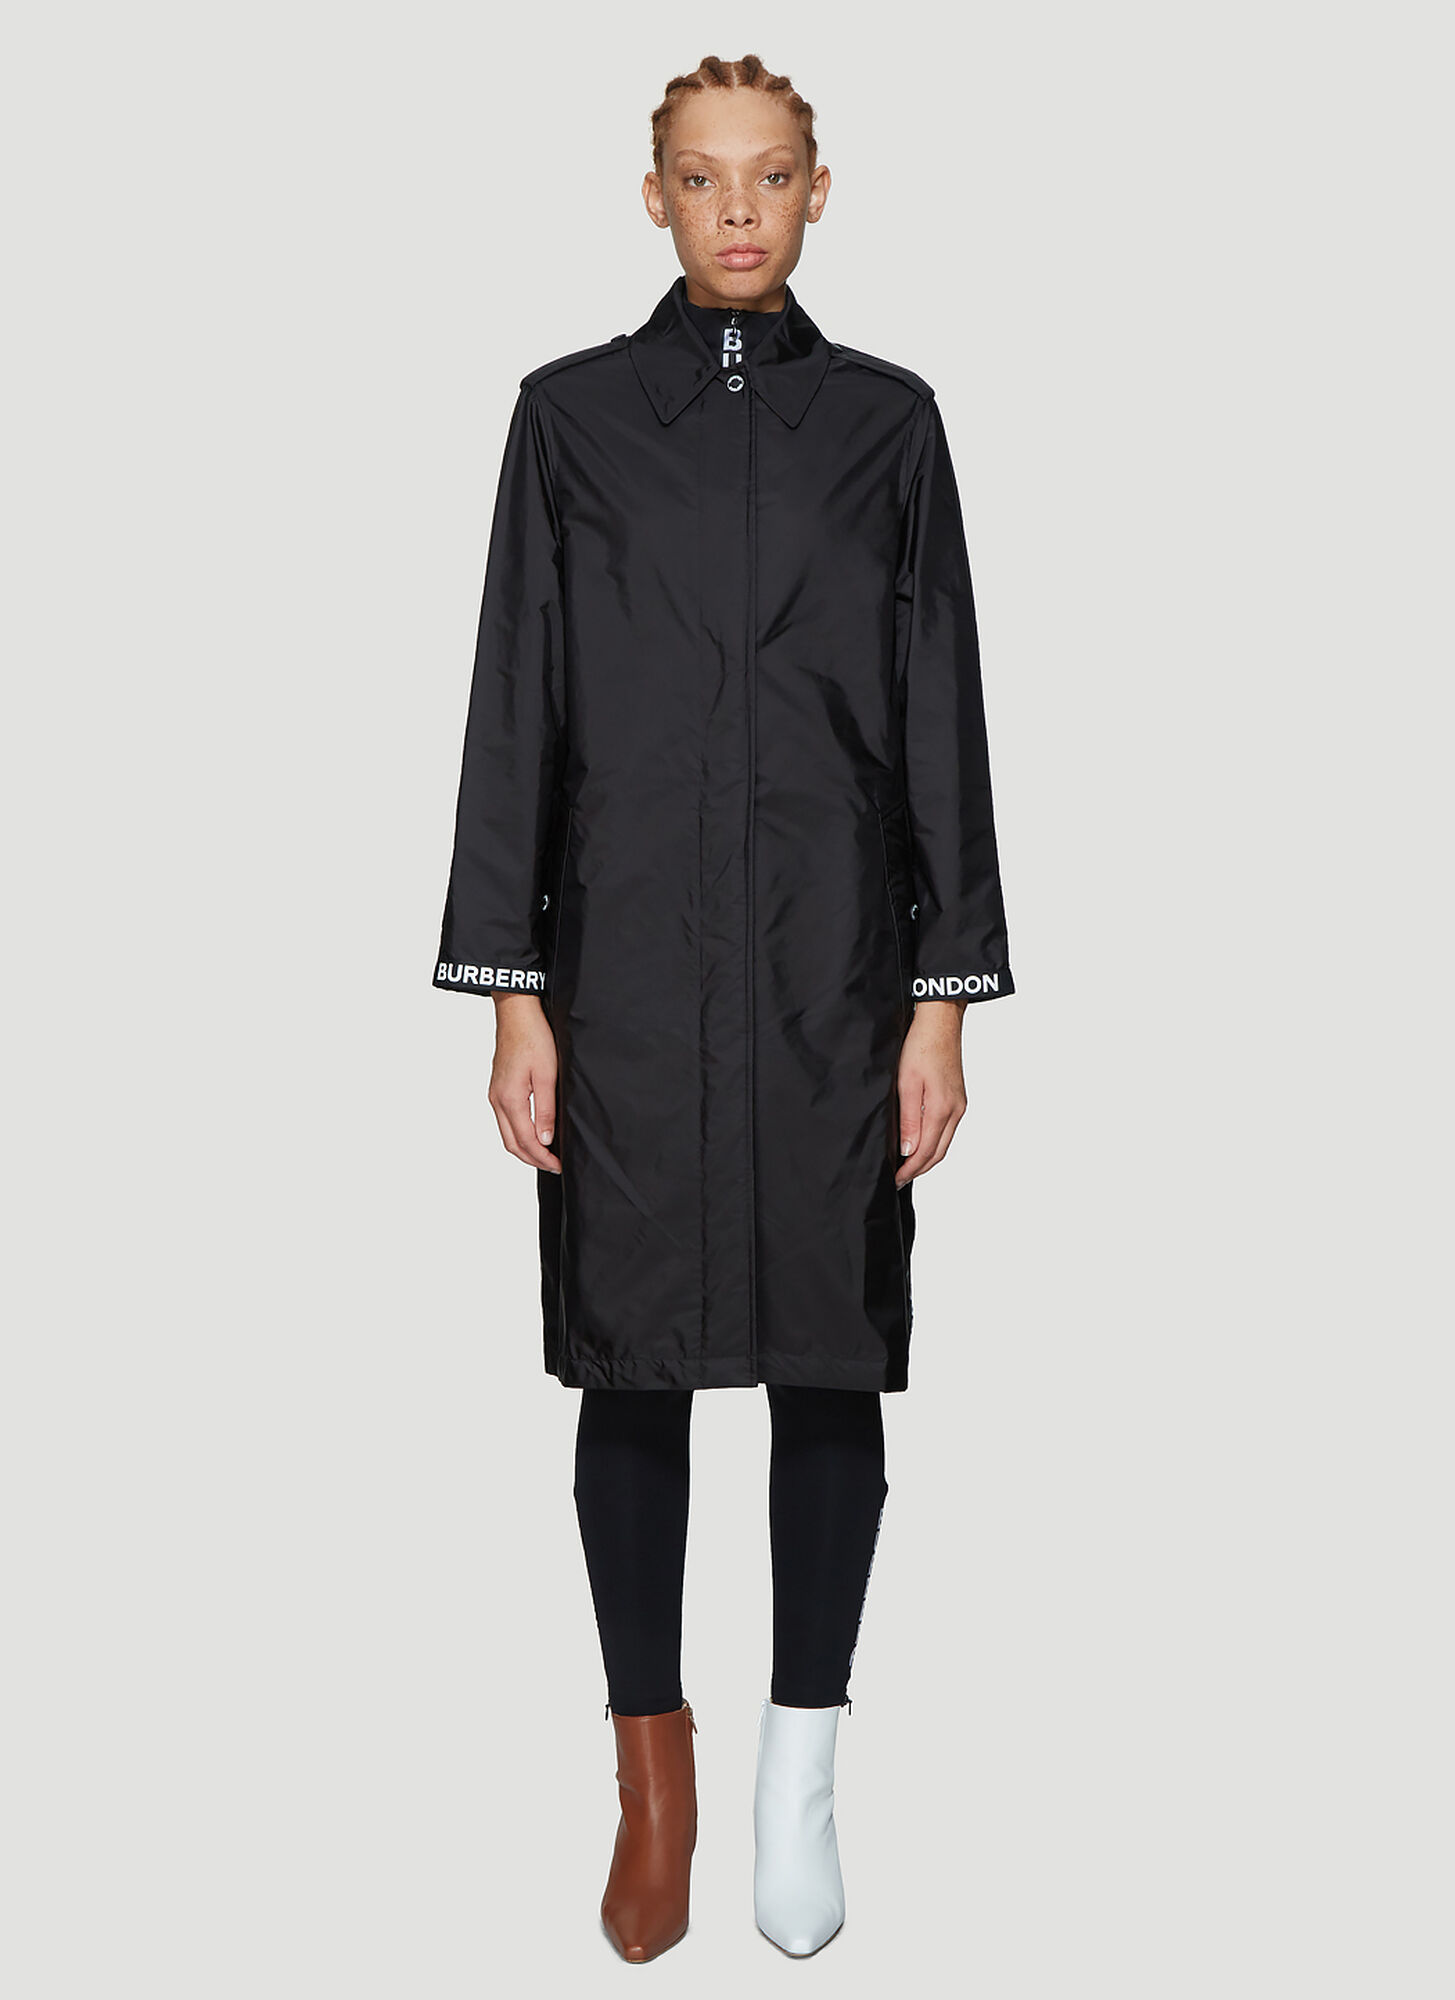 Burberry PadstowTrench Coat in Black